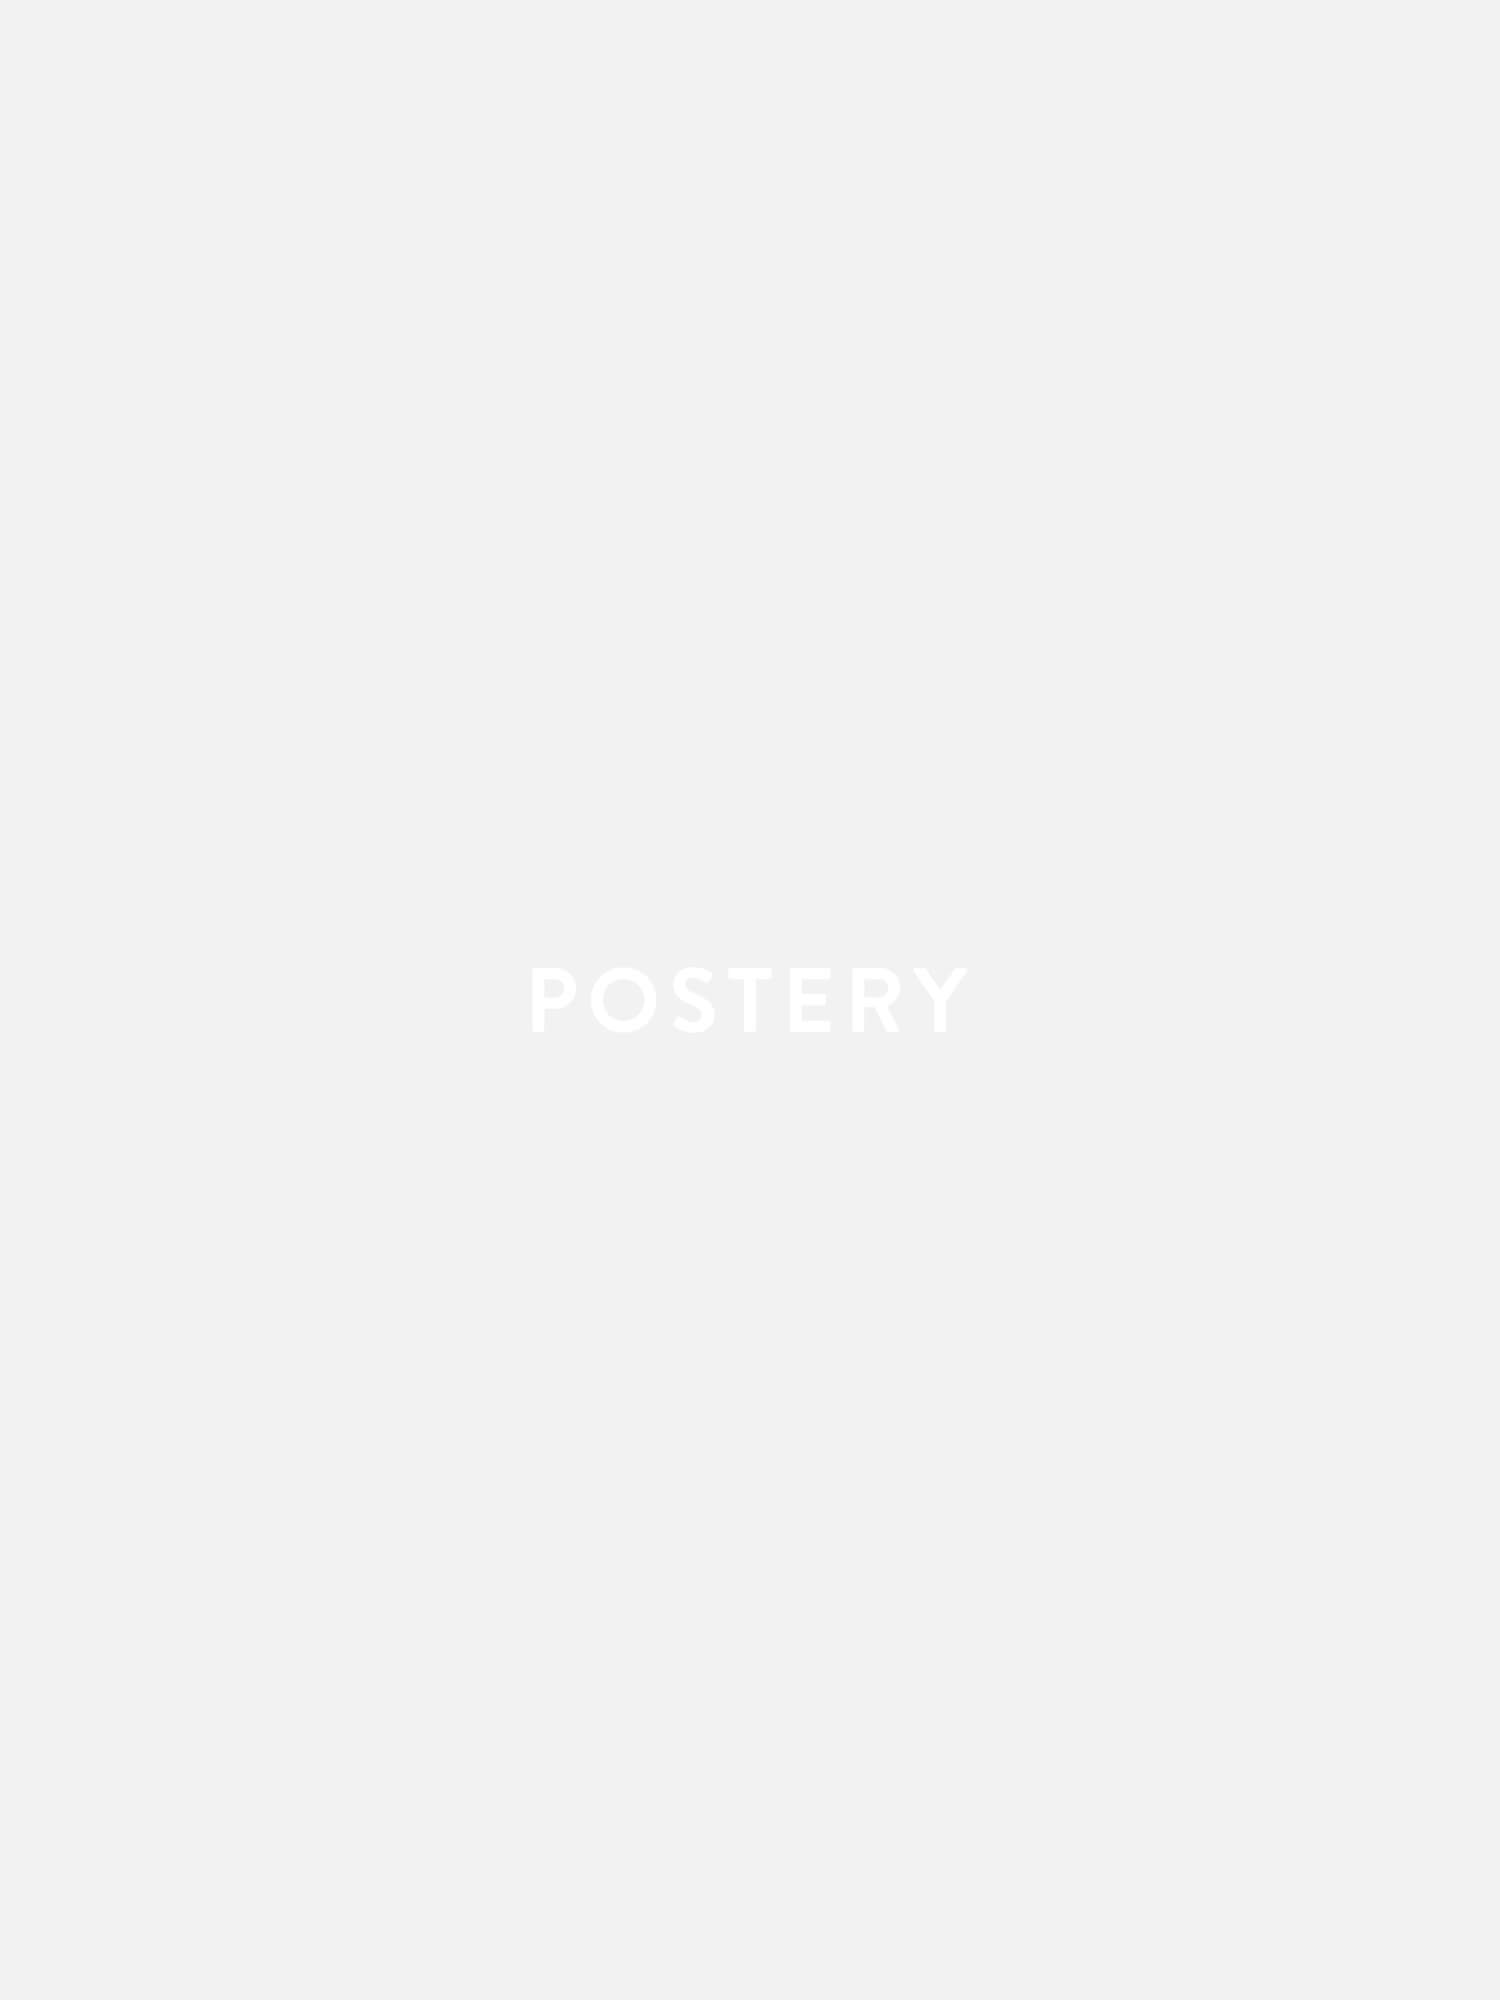 Picasso Three Dancers Poster